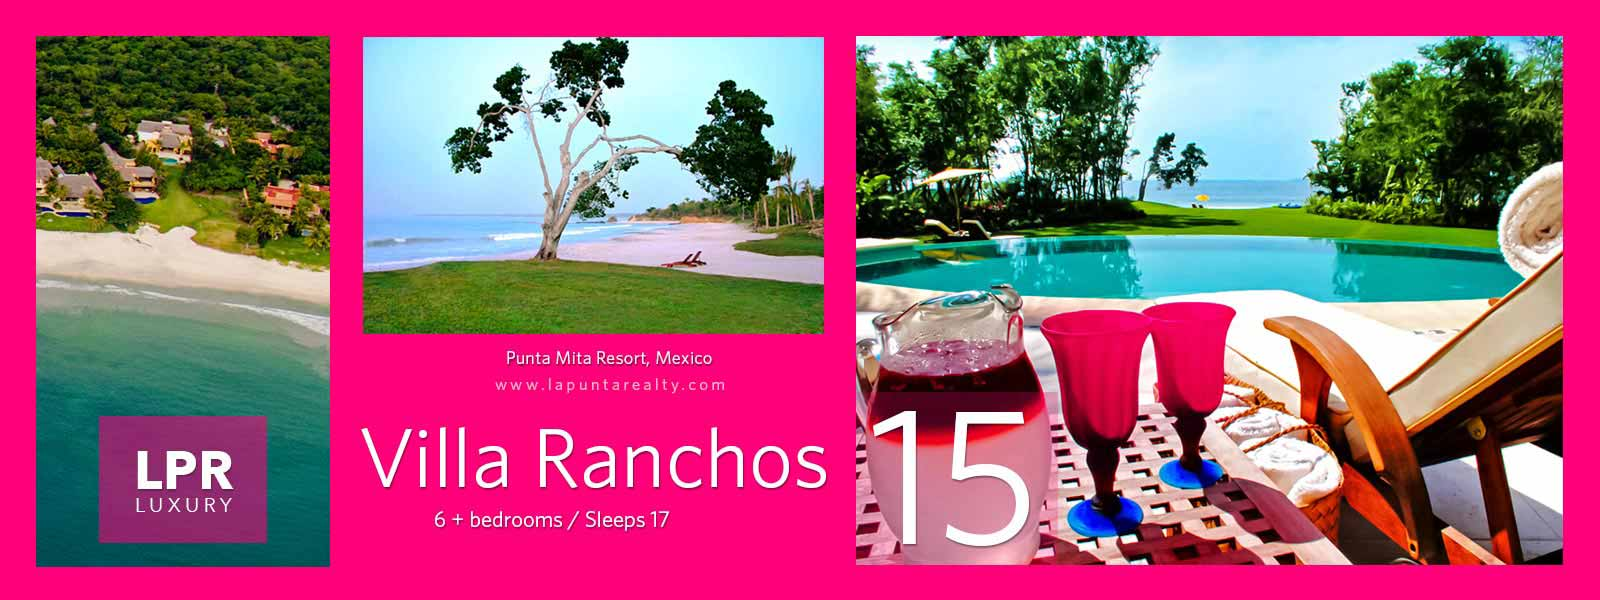 Villa Ranchos 15 - Luxury Punta Mita Rentals - Vacation Villas and Estates